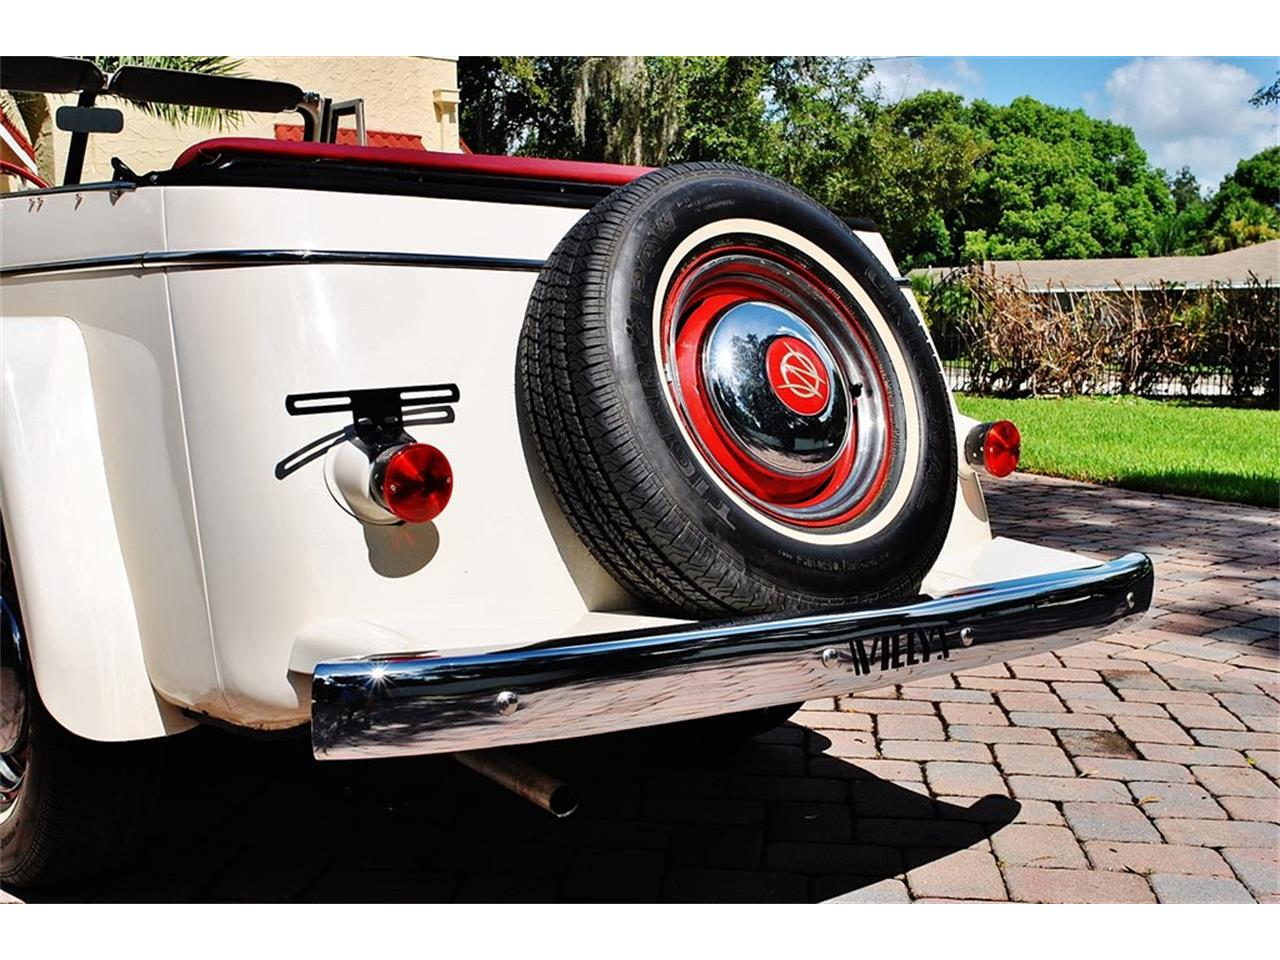 Large Picture of 1950 Willys Jeepster located in Lakeland Florida - $24,900.00 - O7F5